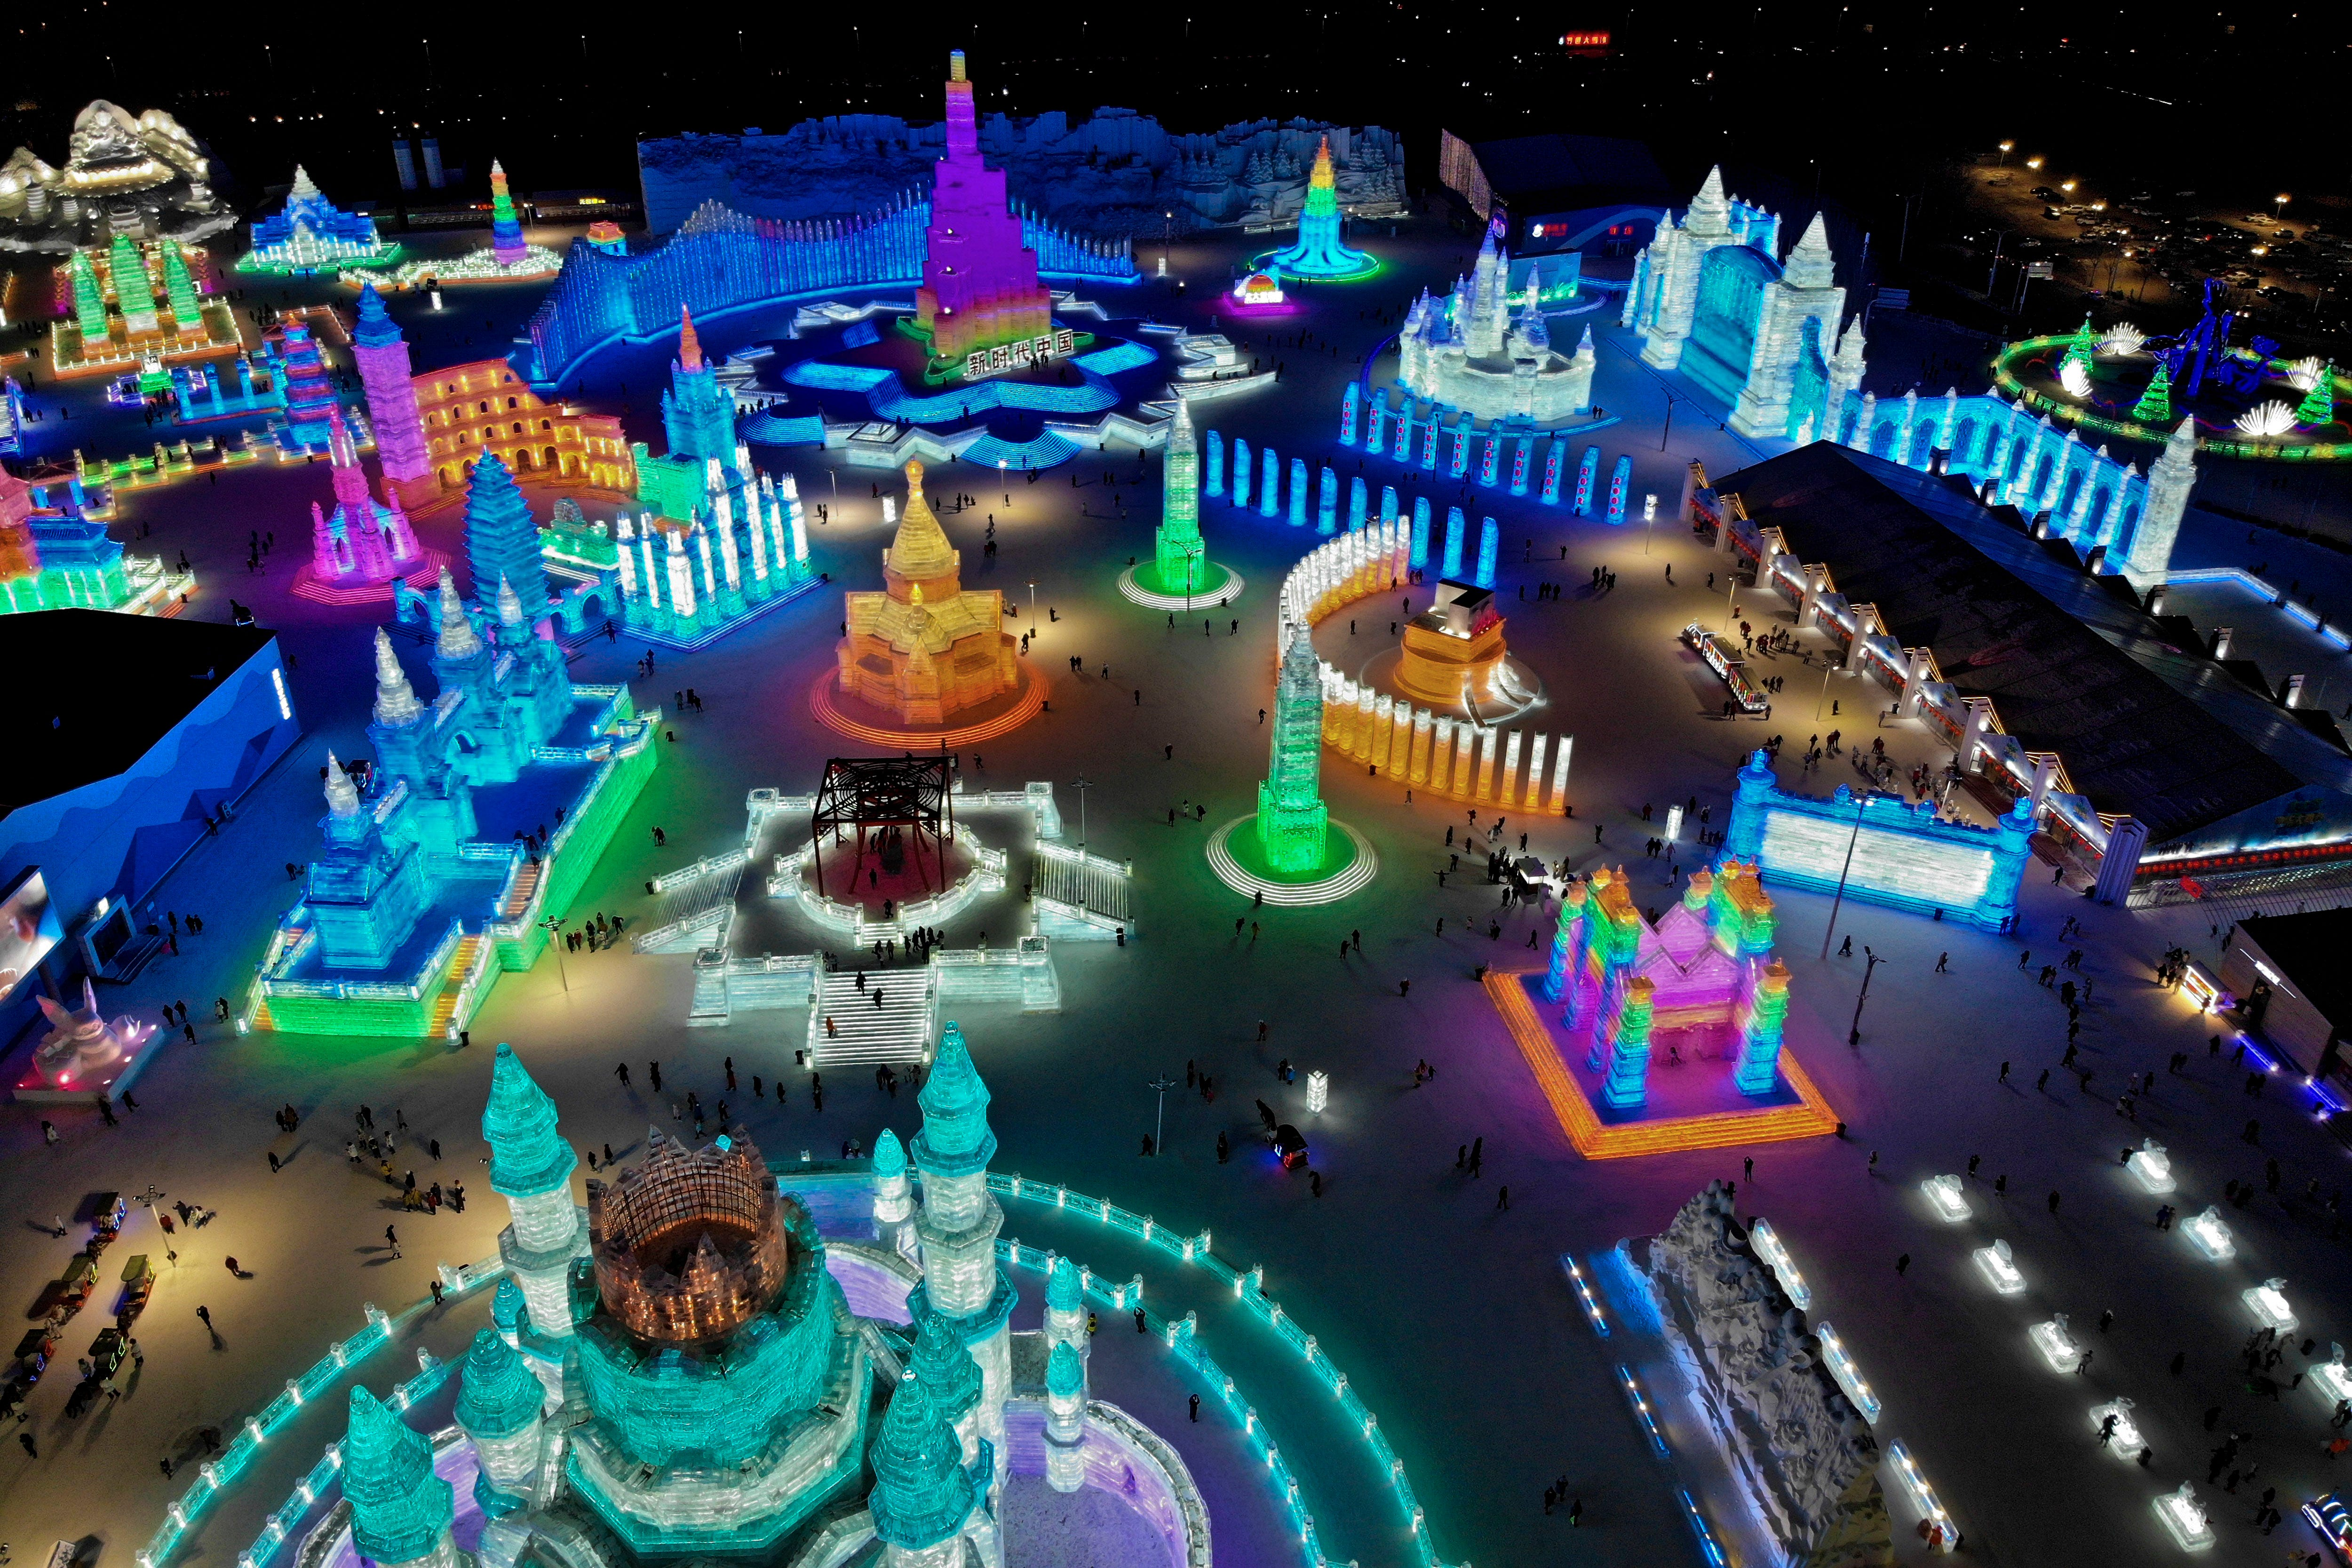 Visitors tour the colorful building structures made from blocks of ice at the Harbin International Ice and Snow festival held in Harbin in northeastern's China's Heilongjiang province, Friday, Jan. 4, 2019. The Harbin International Ice and Snow Festival is known for massive, elaborate and colorfully lit ice sculptures featuring animals, cartoon characters and famous landmarks.